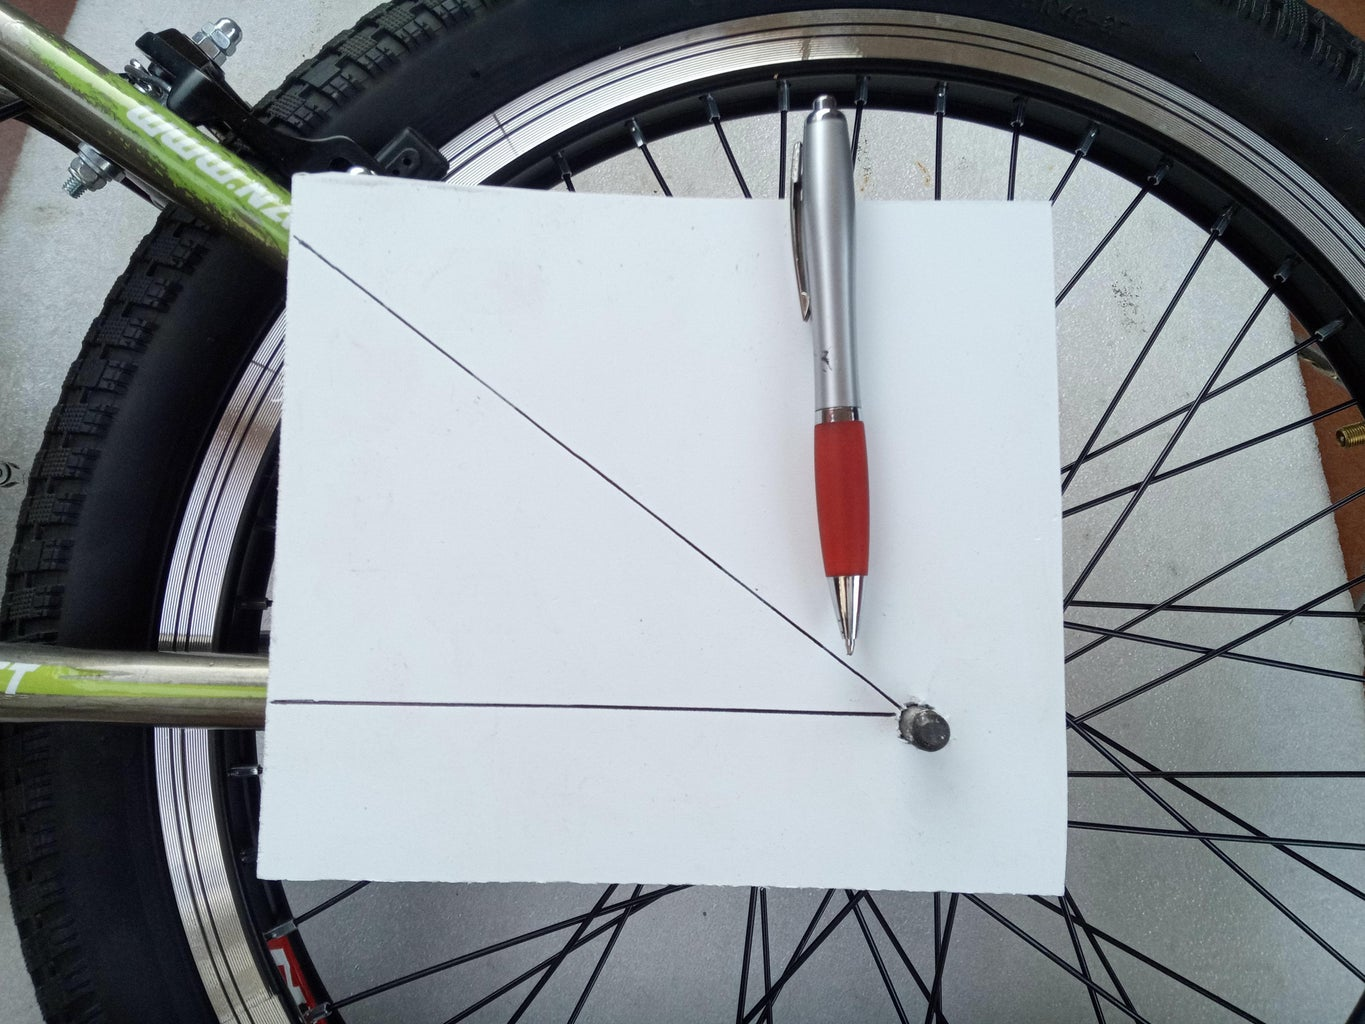 Map the Bicycle Frame